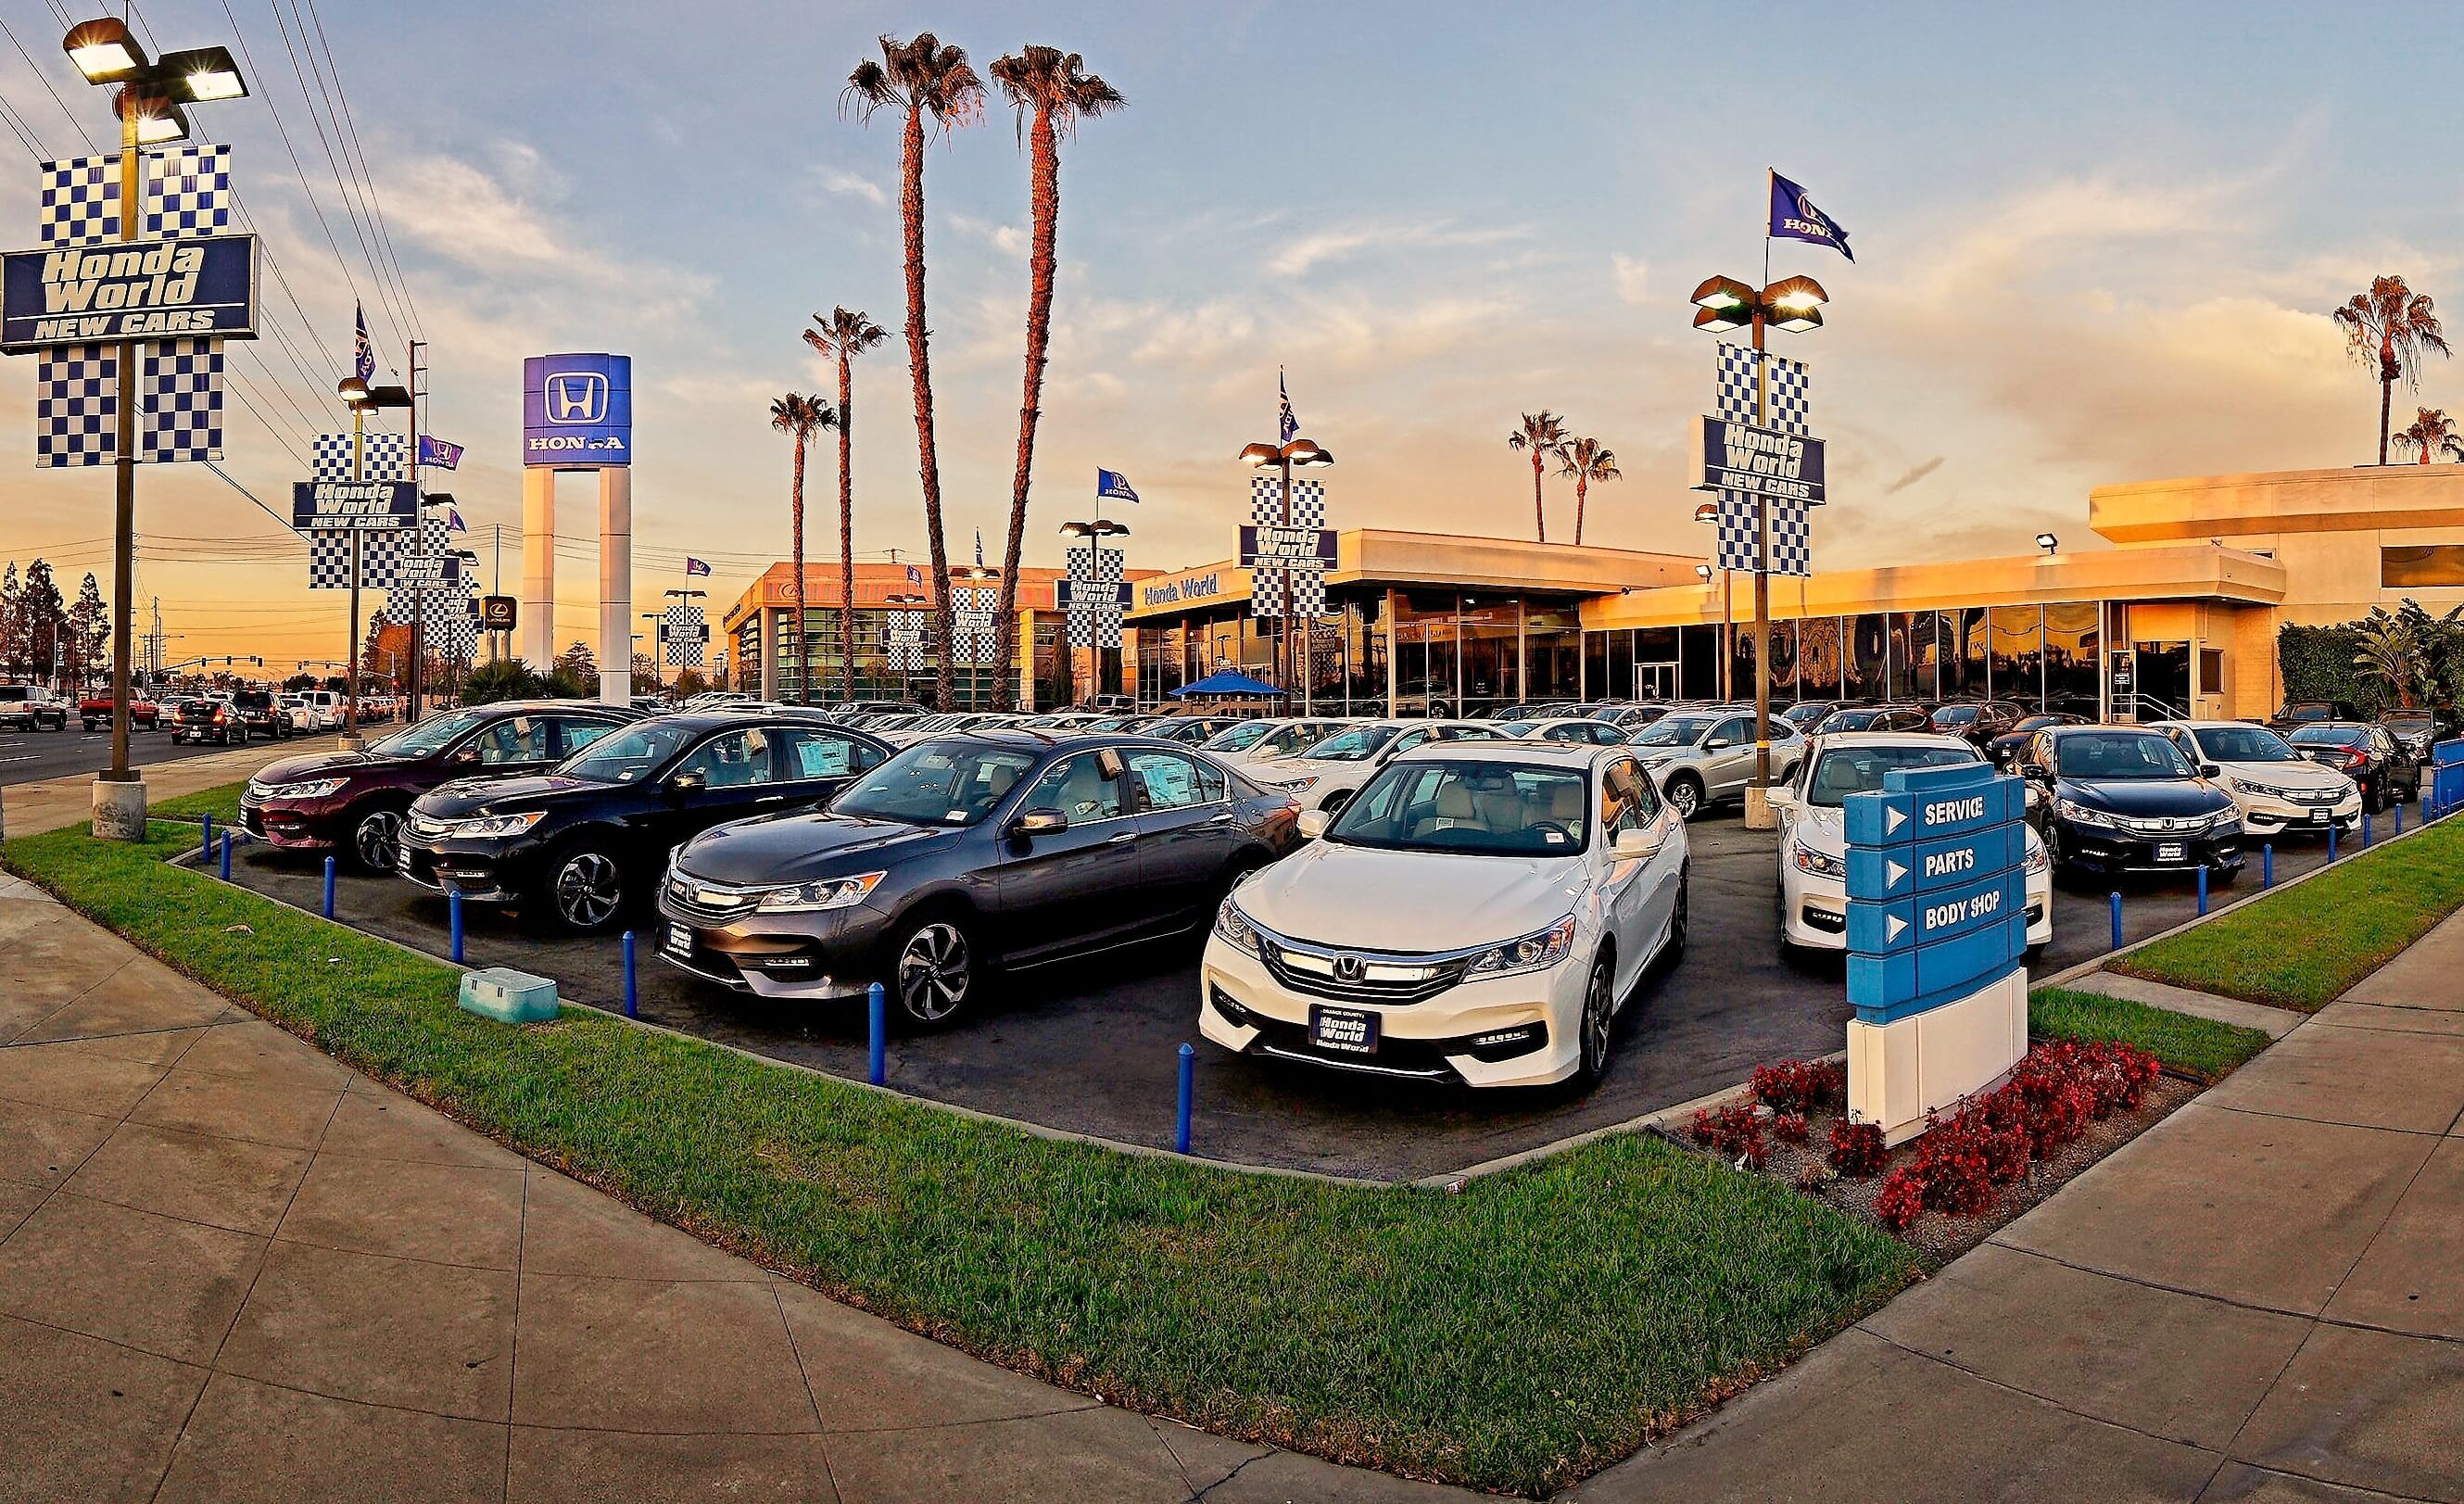 Honda Dealership Orange County >> About Us Honda World Oc Westminster California 92683